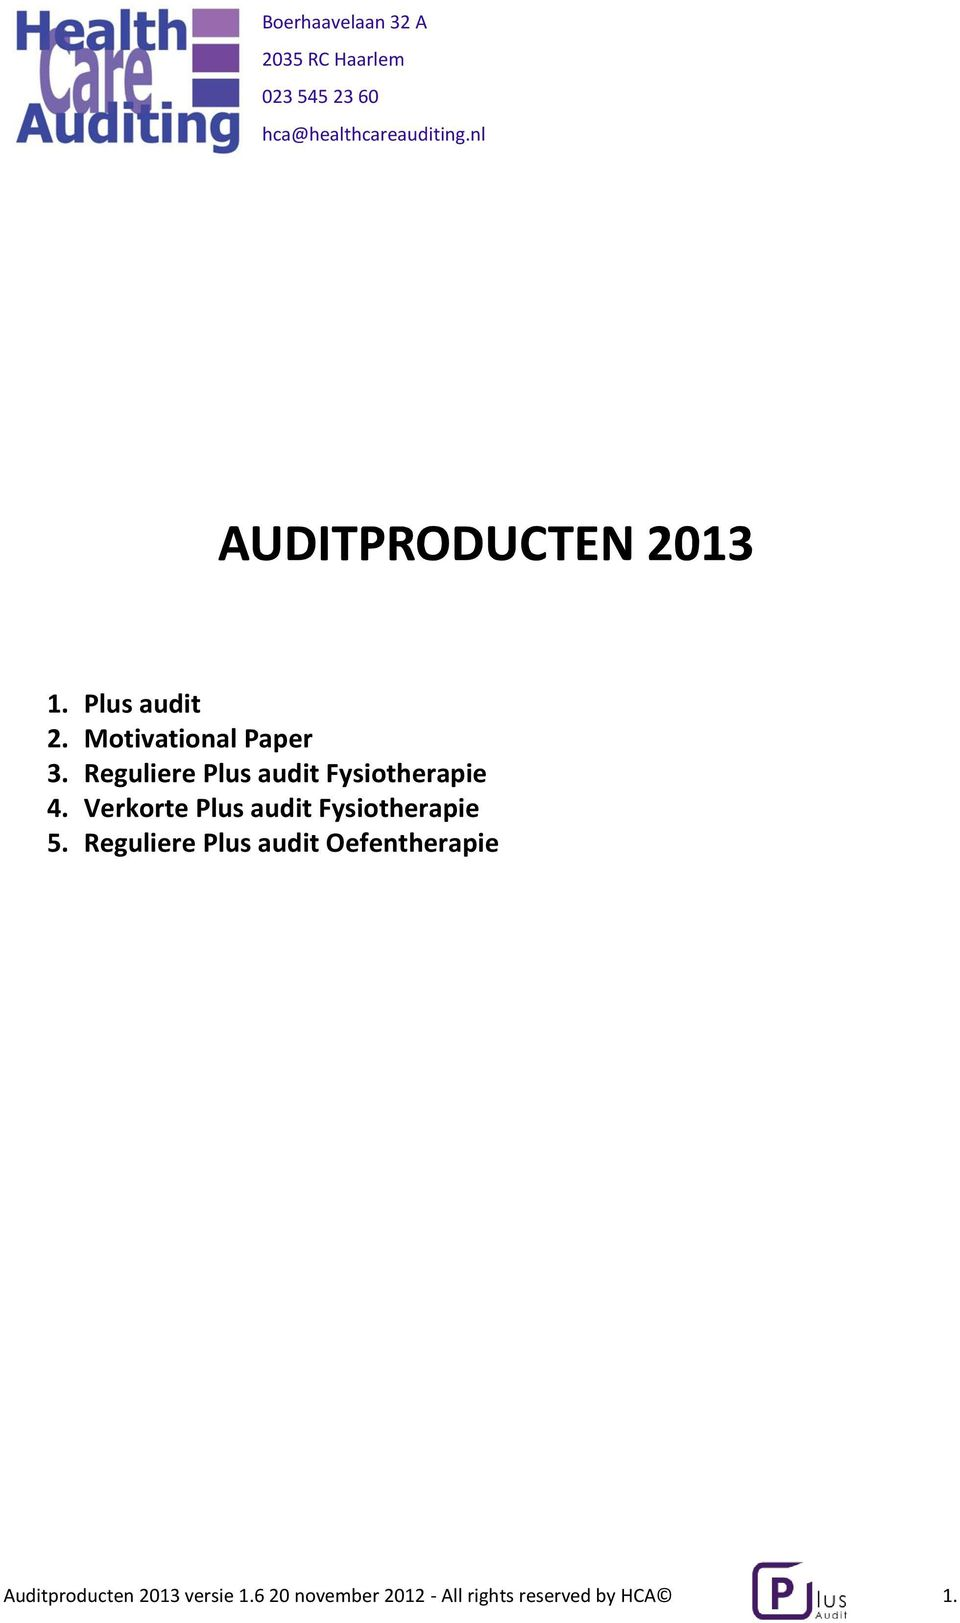 Verkorte Plus audit Fysiotherapie 5.